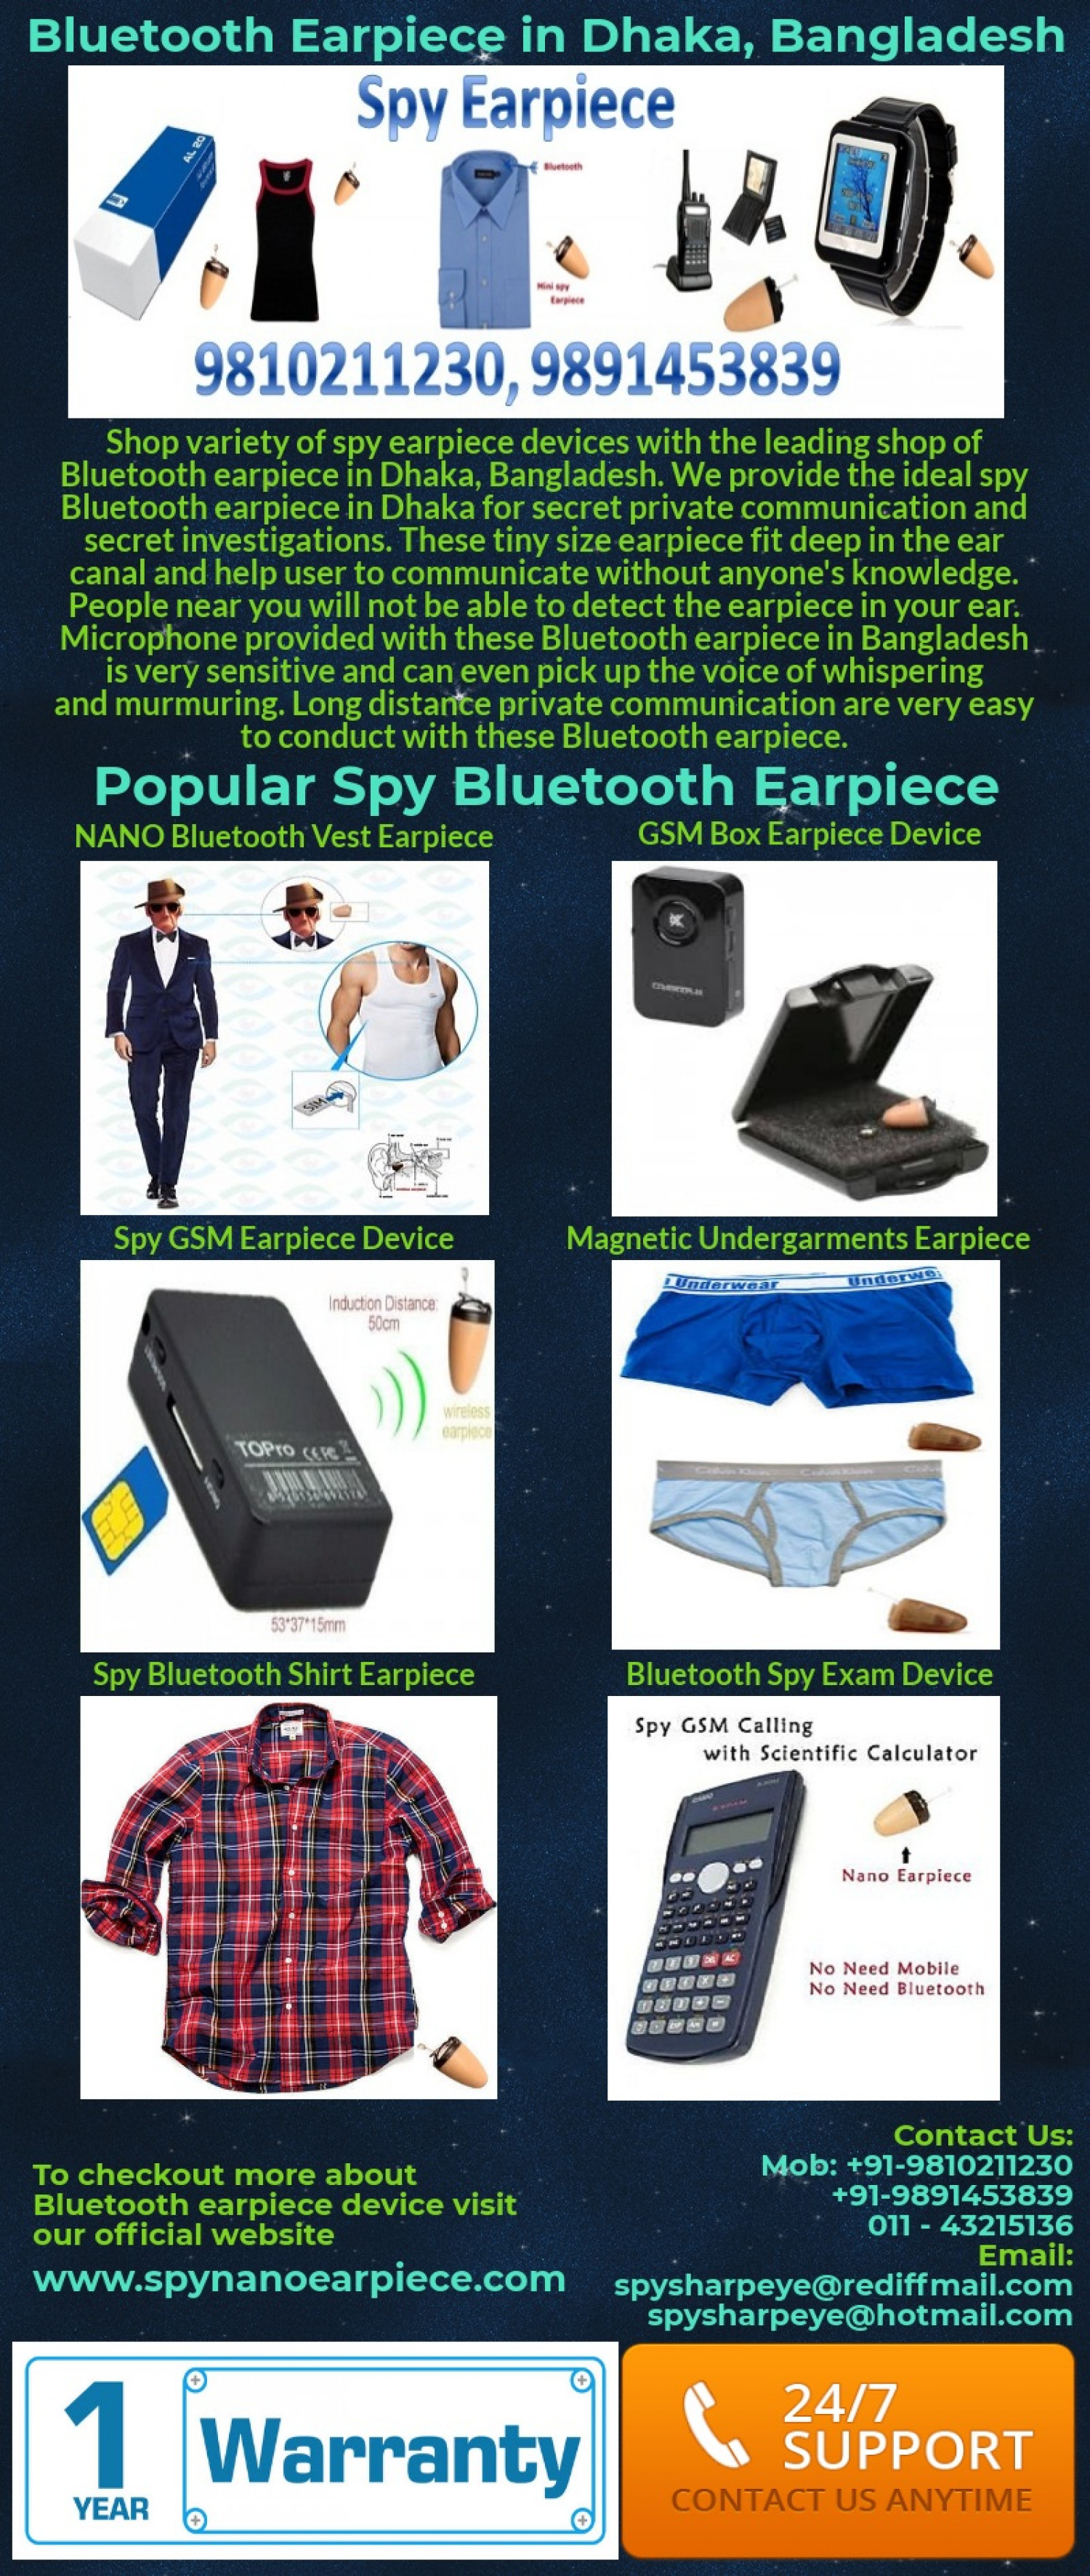 Undetectable Spy Bluetooth Earpiece in Dhaka Bangladesh Infographic